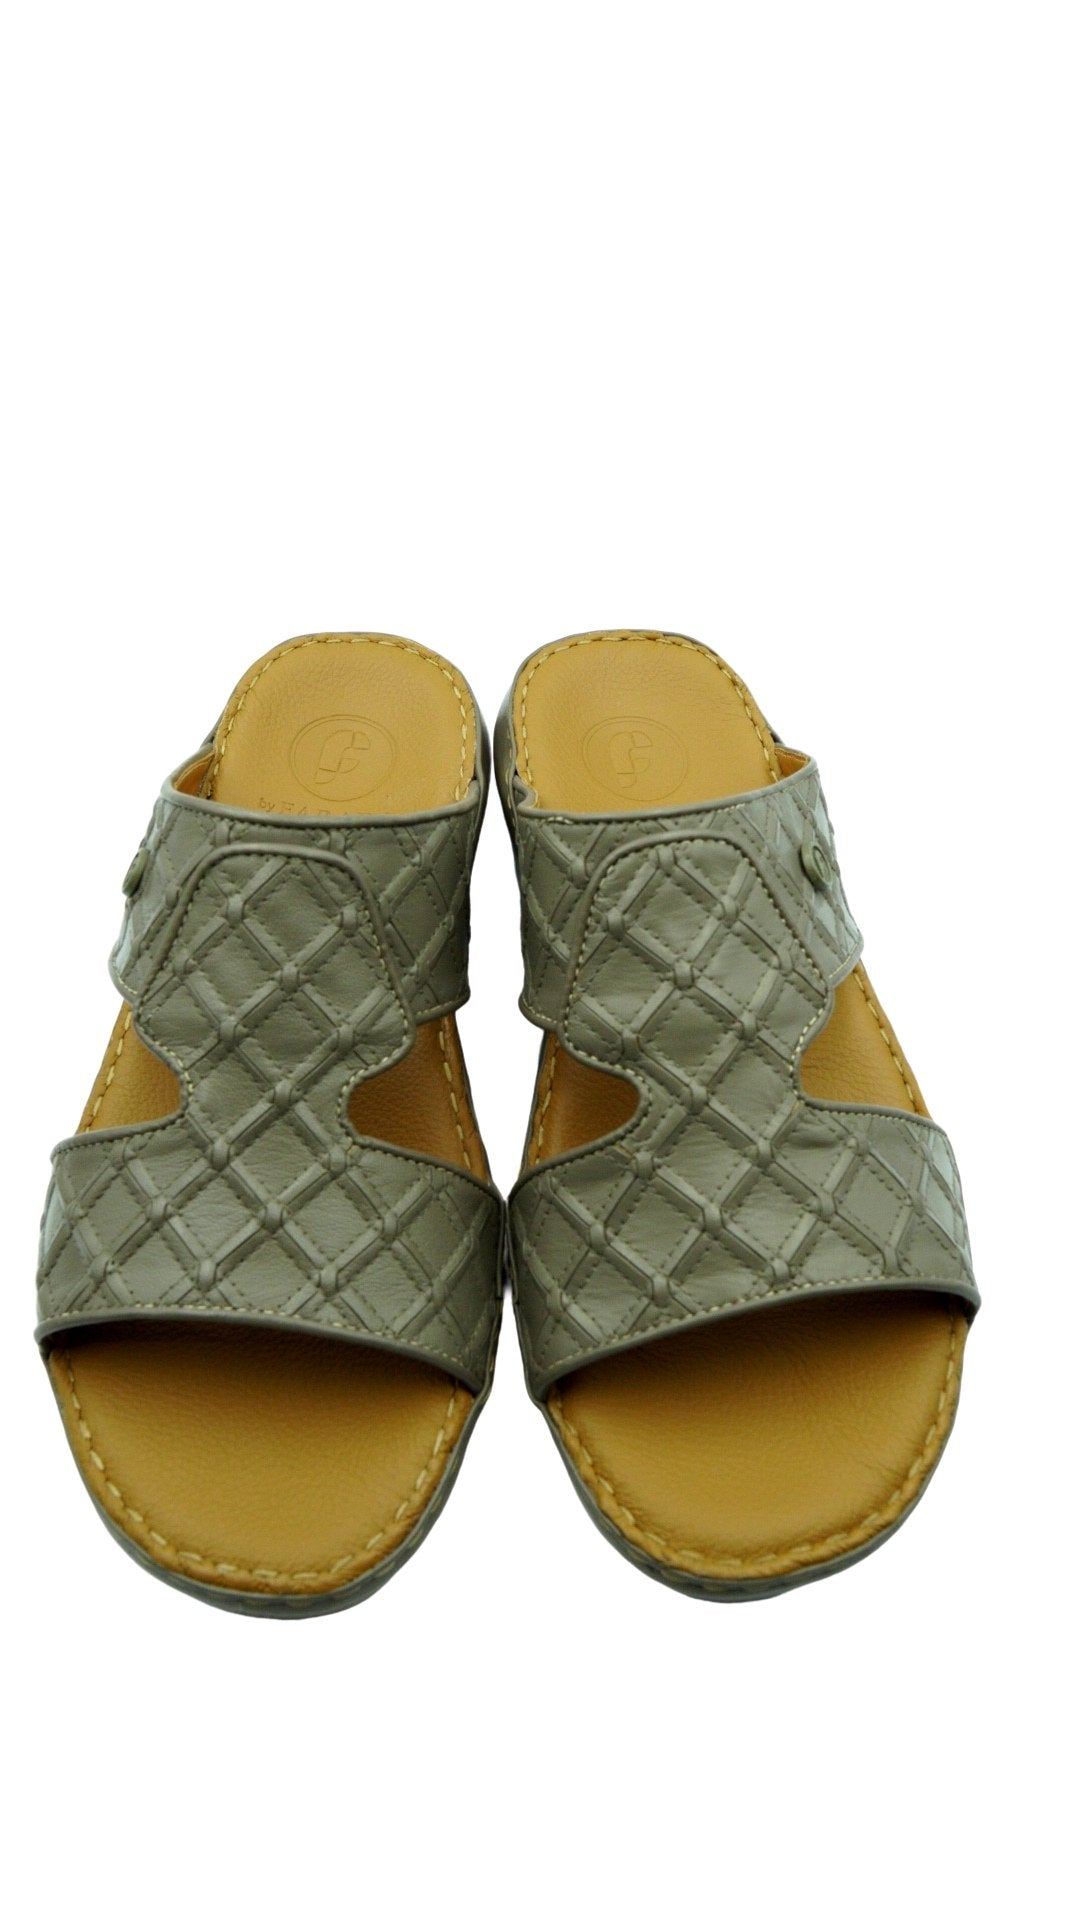 Taupe Crown Square-Patch (121-15) Arabic Sandal